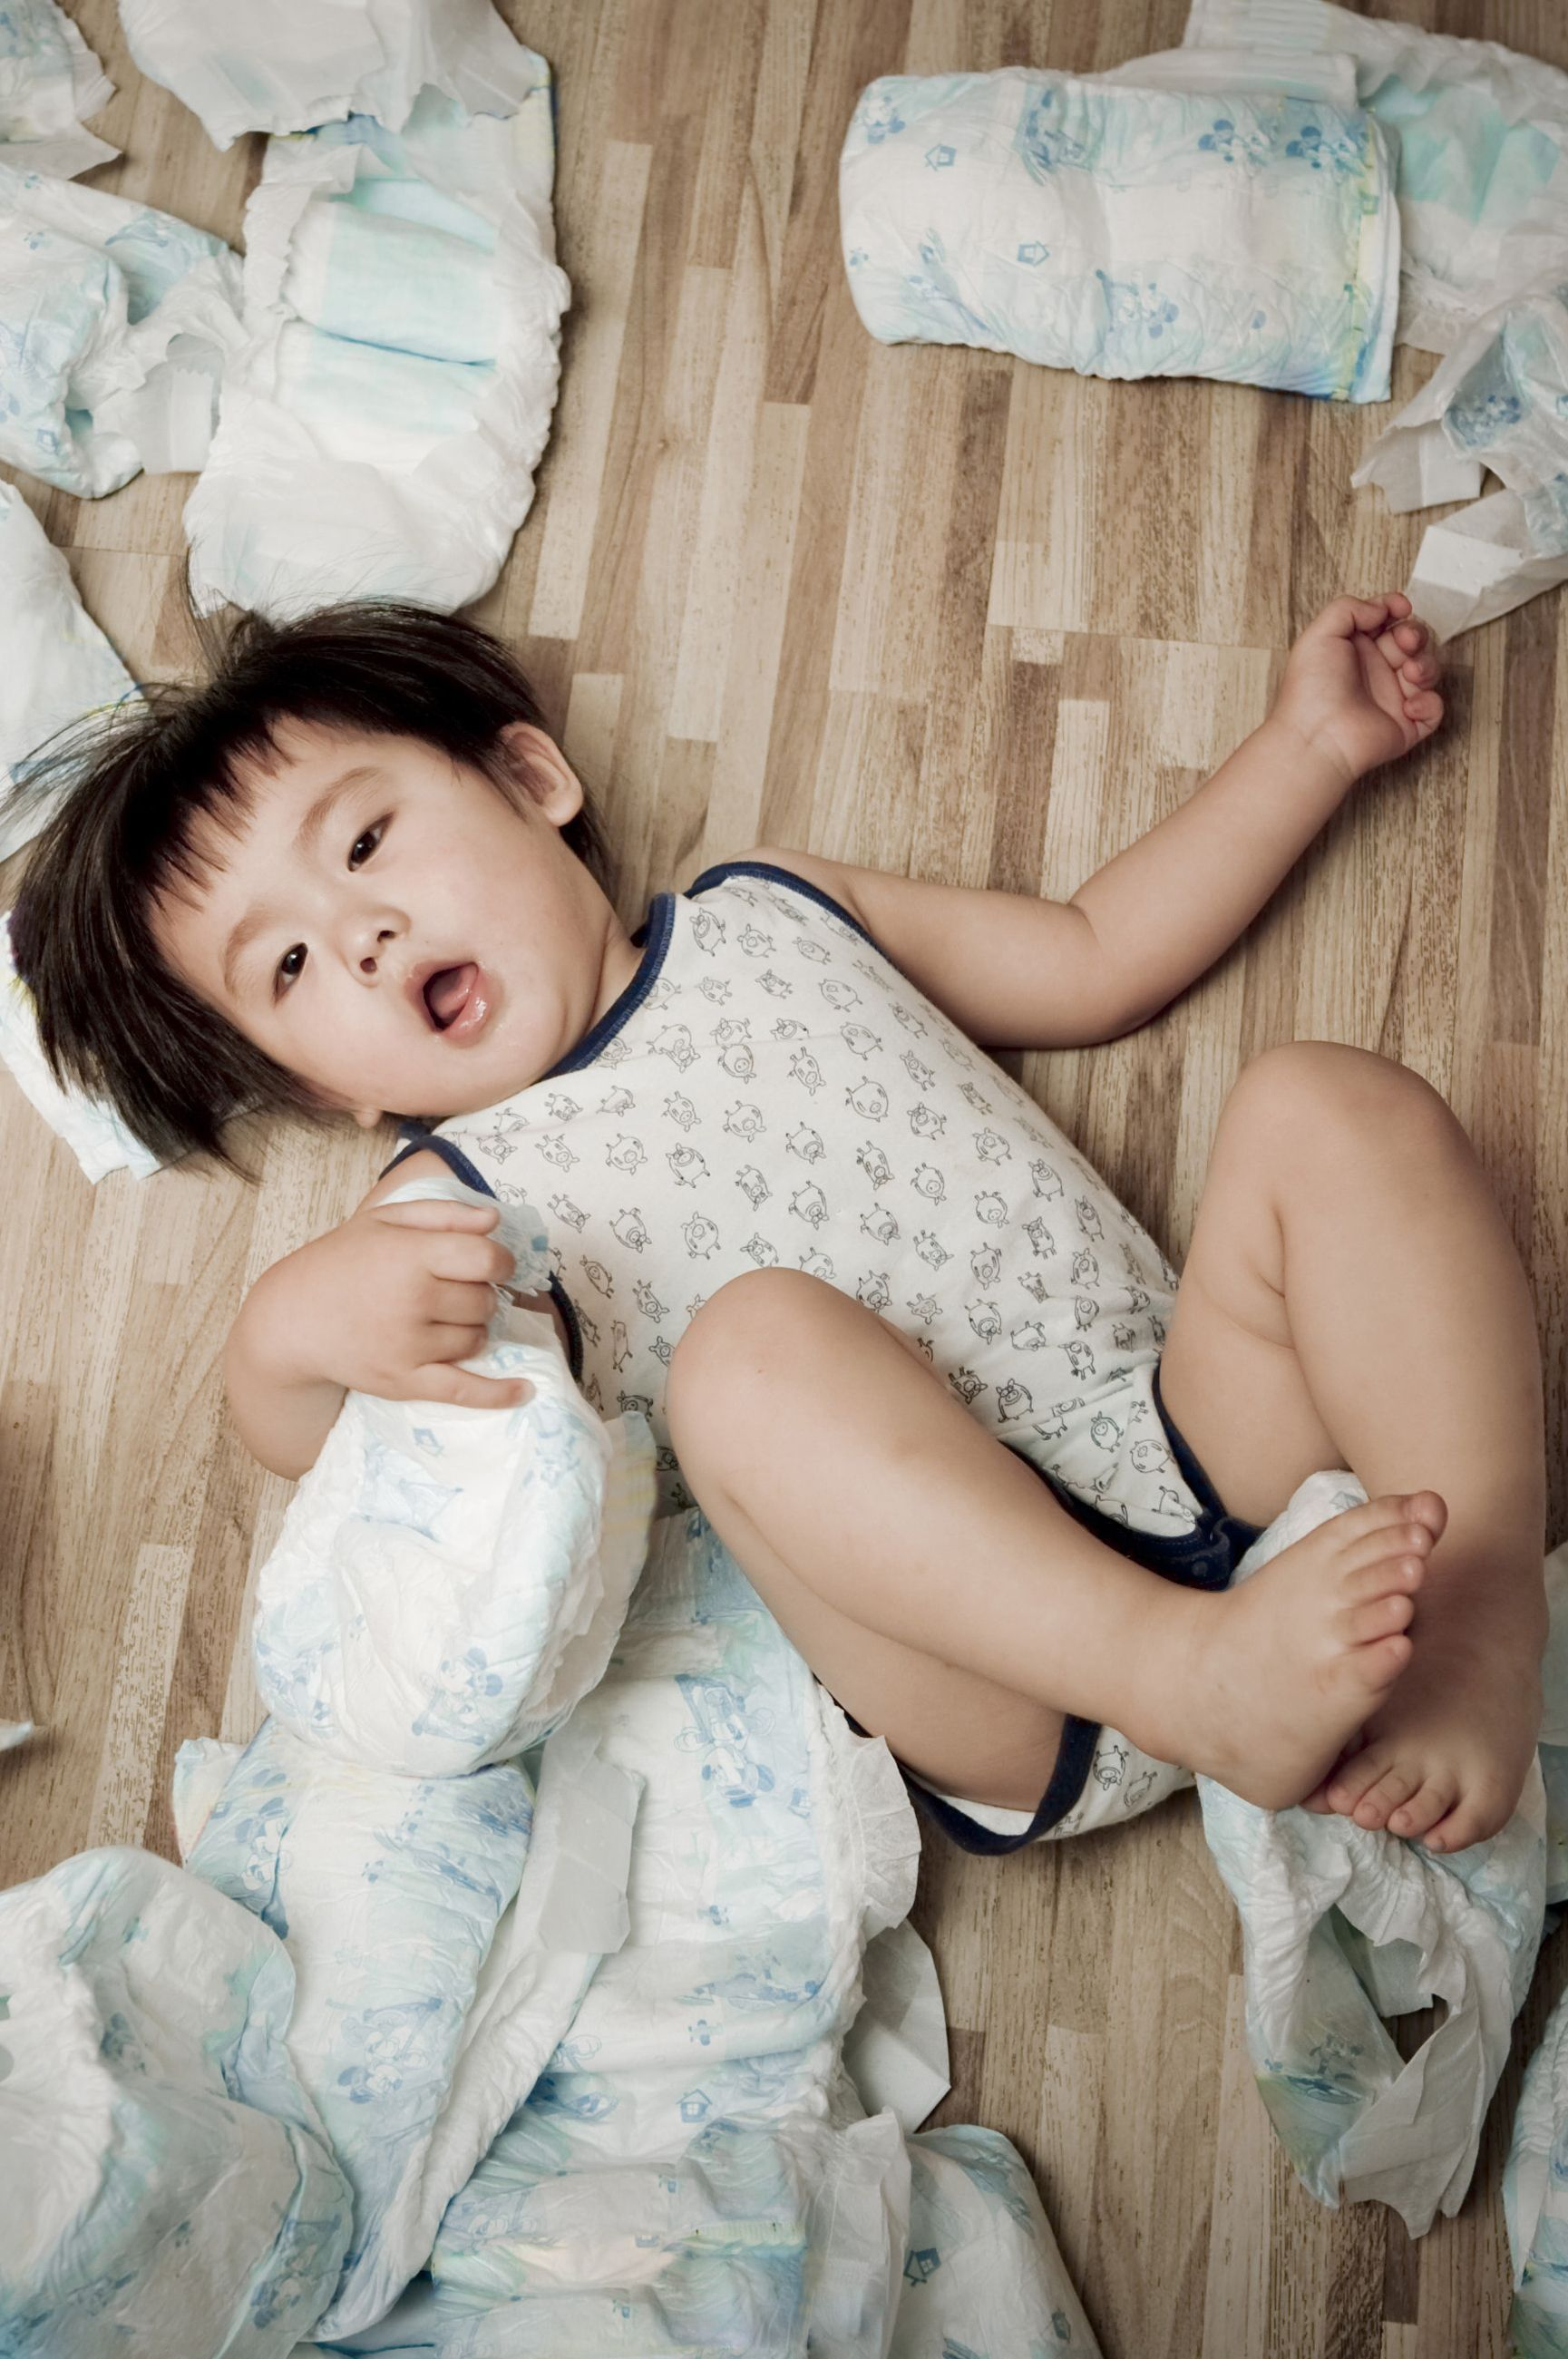 21 Rookie Parenting Mistakes - Mistakes All New Parents Make